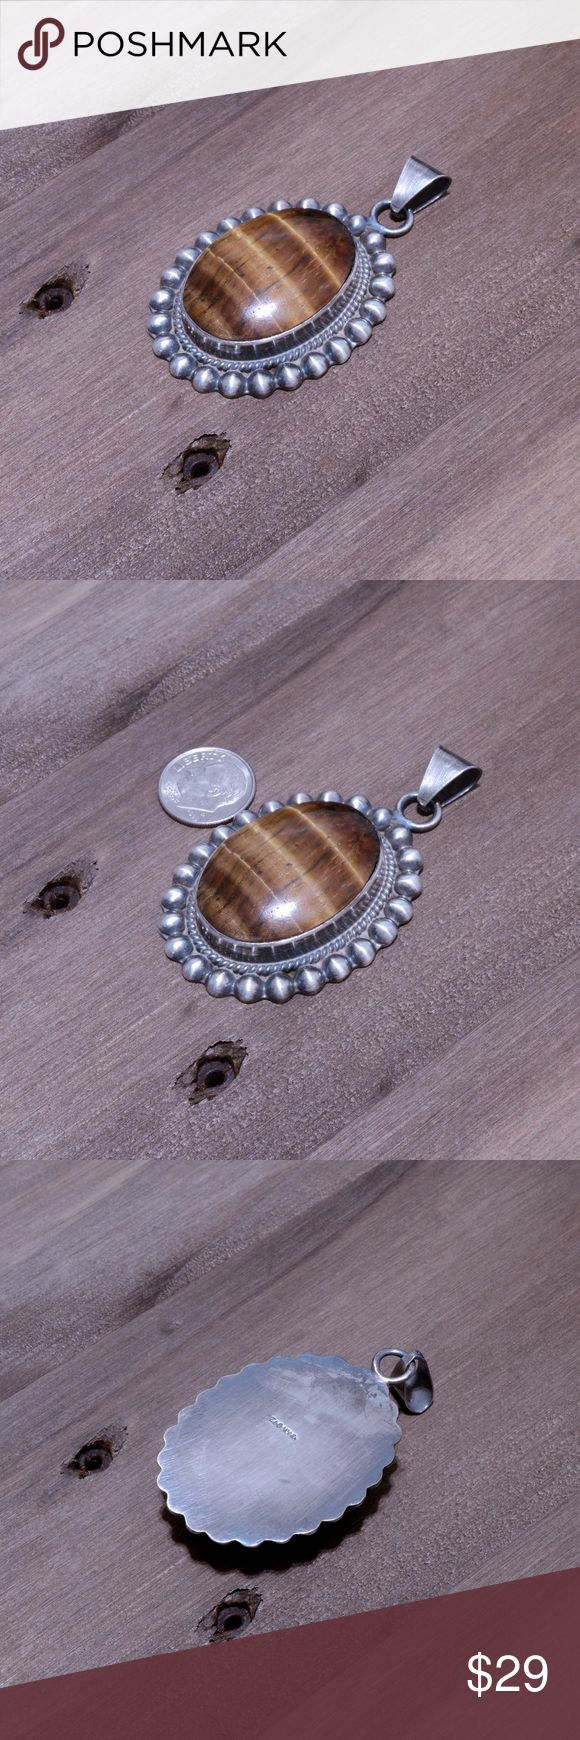 "‼️Clearance‼️Large Vintage 925 & Tigers Eye Pendan Stamped ""mexico925"". Pendant Hangs: 65 mm. Weighs 32.4 grams. The image is of the actual article that is being sold. Sterling silver is an alloy of silver containing 92.5% by mass of silver and 7.5% by mass of other metal. The fitness on this ring is 950. All my jewelry is solid sterling silver. I do not plate. crafted in Taxco, Mexico. Jewelry Necklaces"